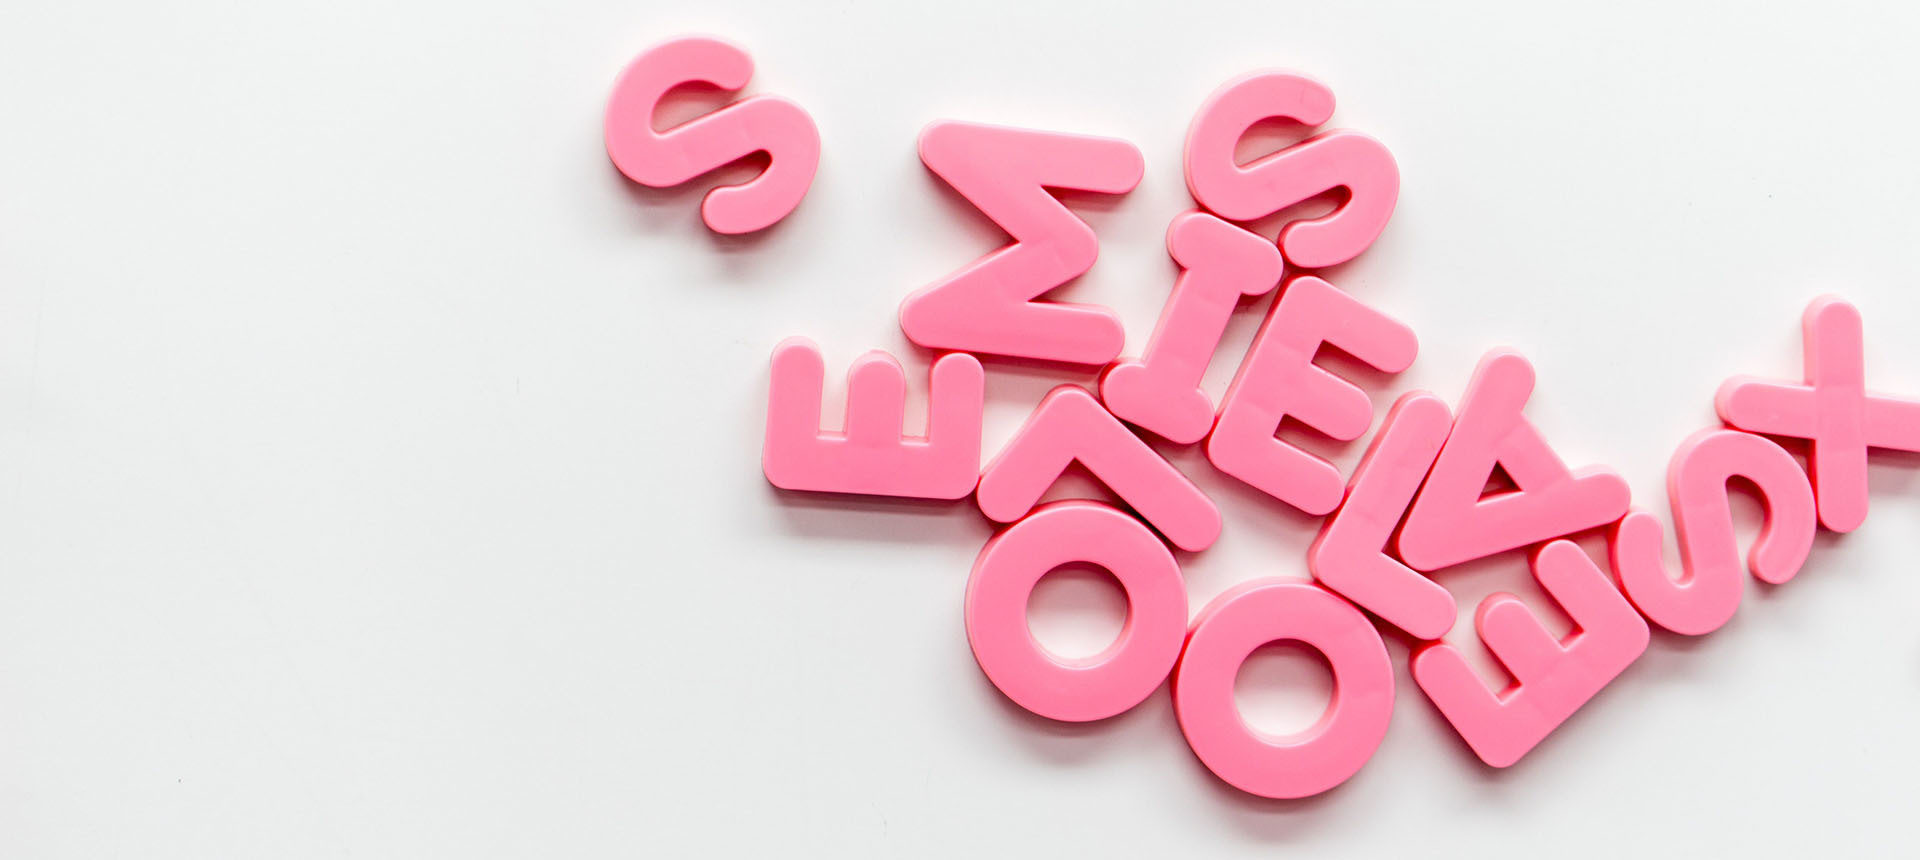 Letters in pink